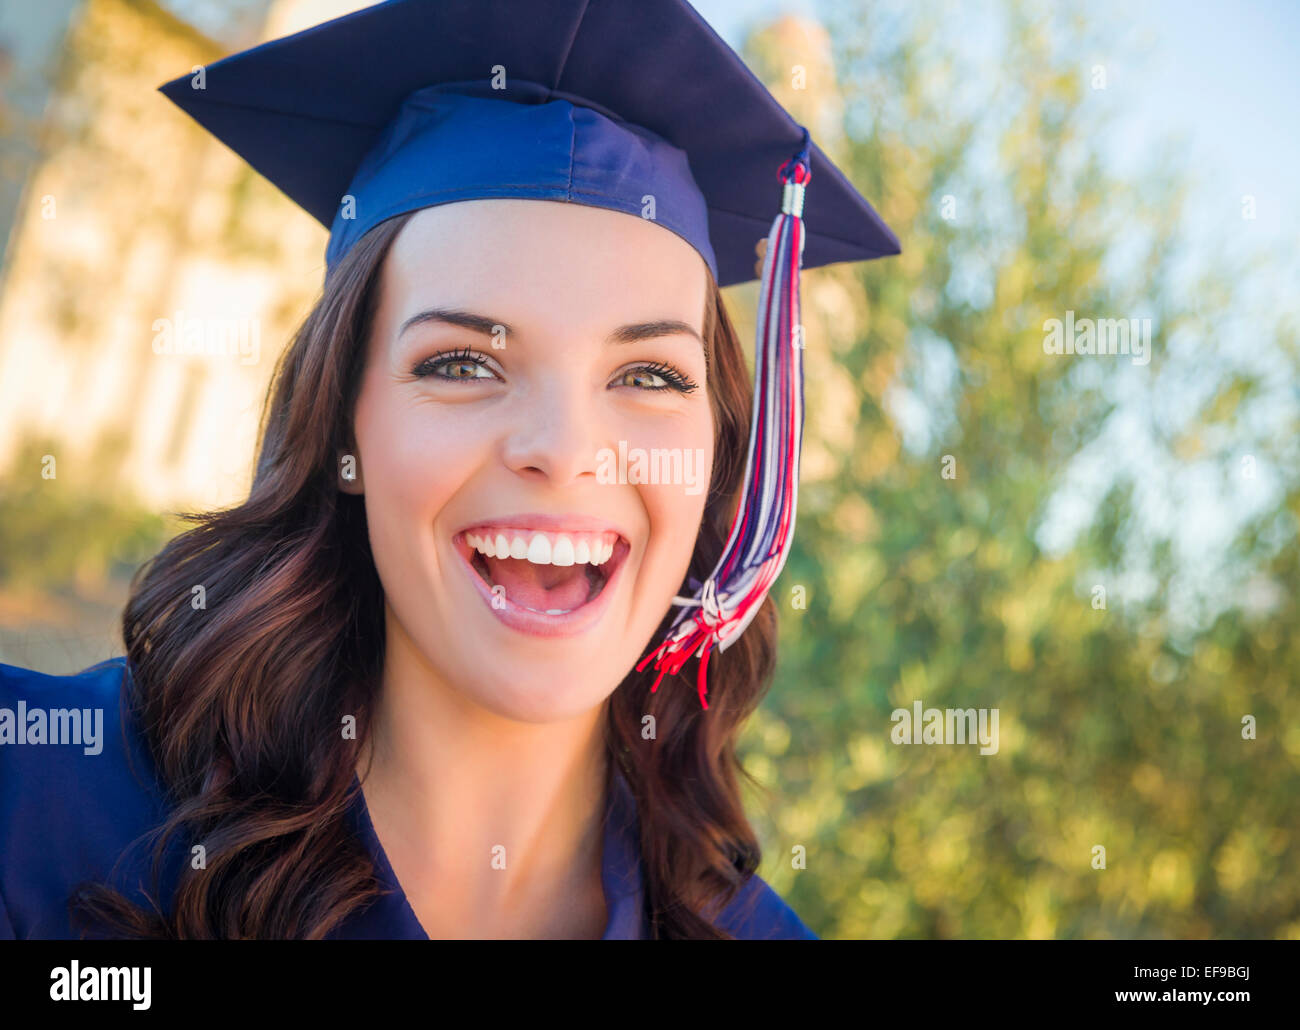 Happy Graduating Mixed Race Woman In Cap and Gown Celebrating on Campus. - Stock Image